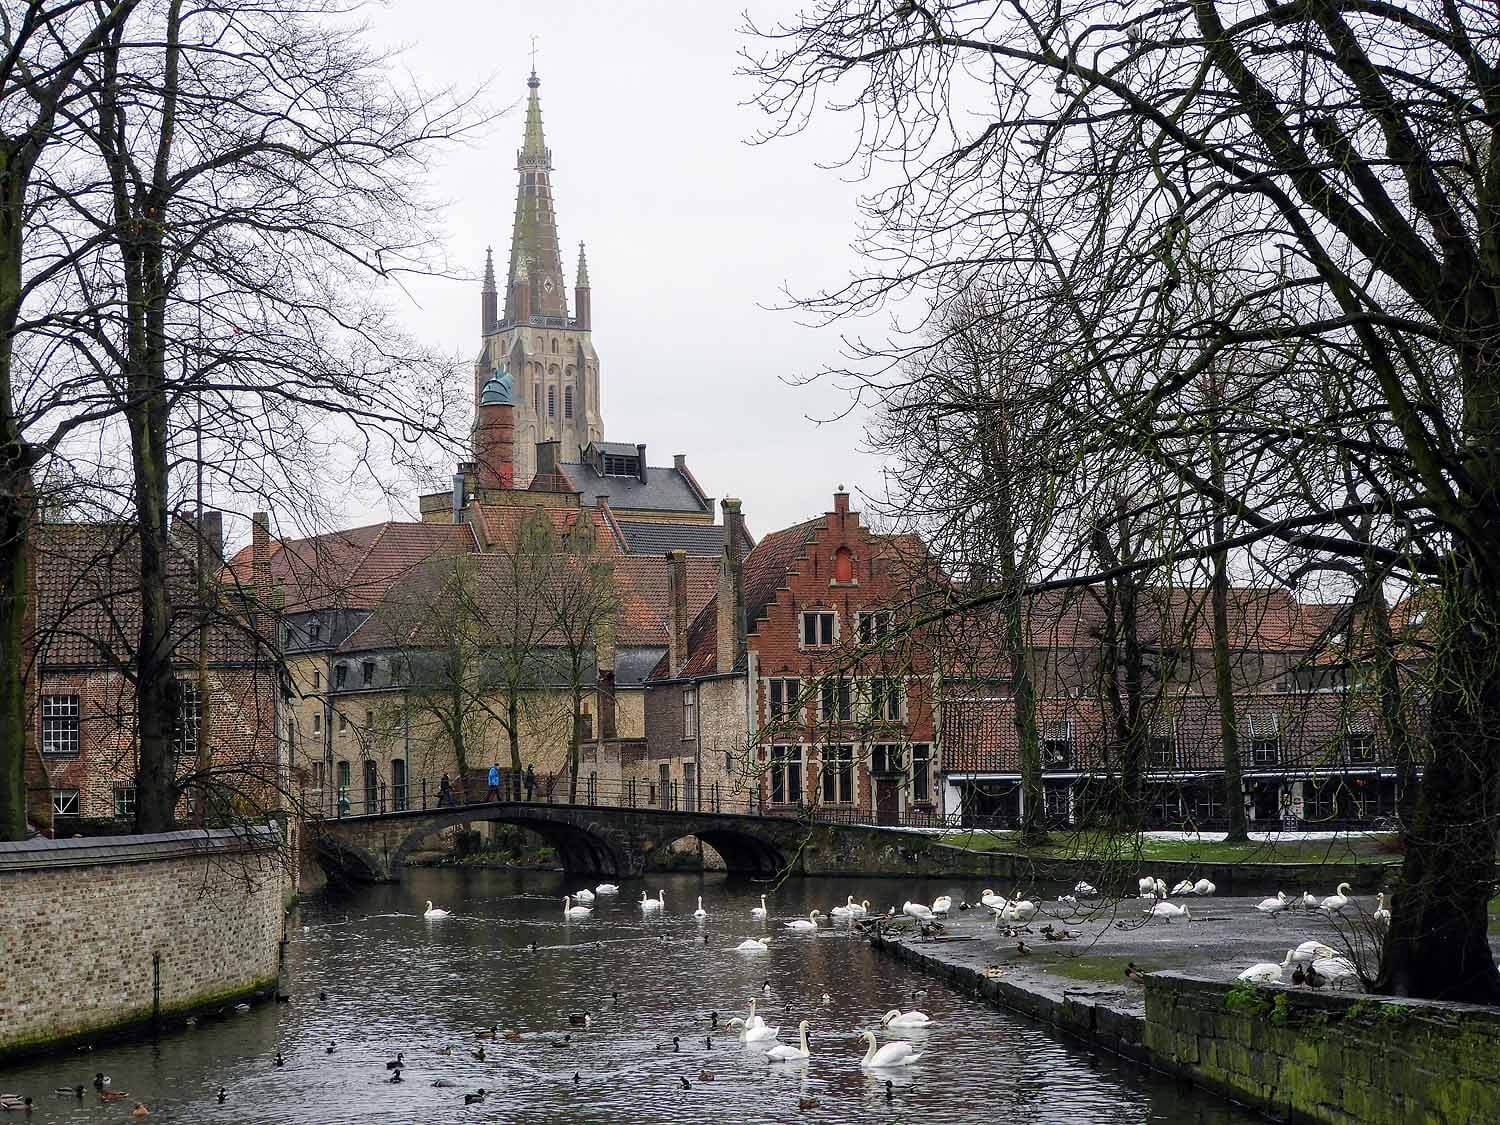 belgium-bruges-cathedral-bridge-swans.jpg